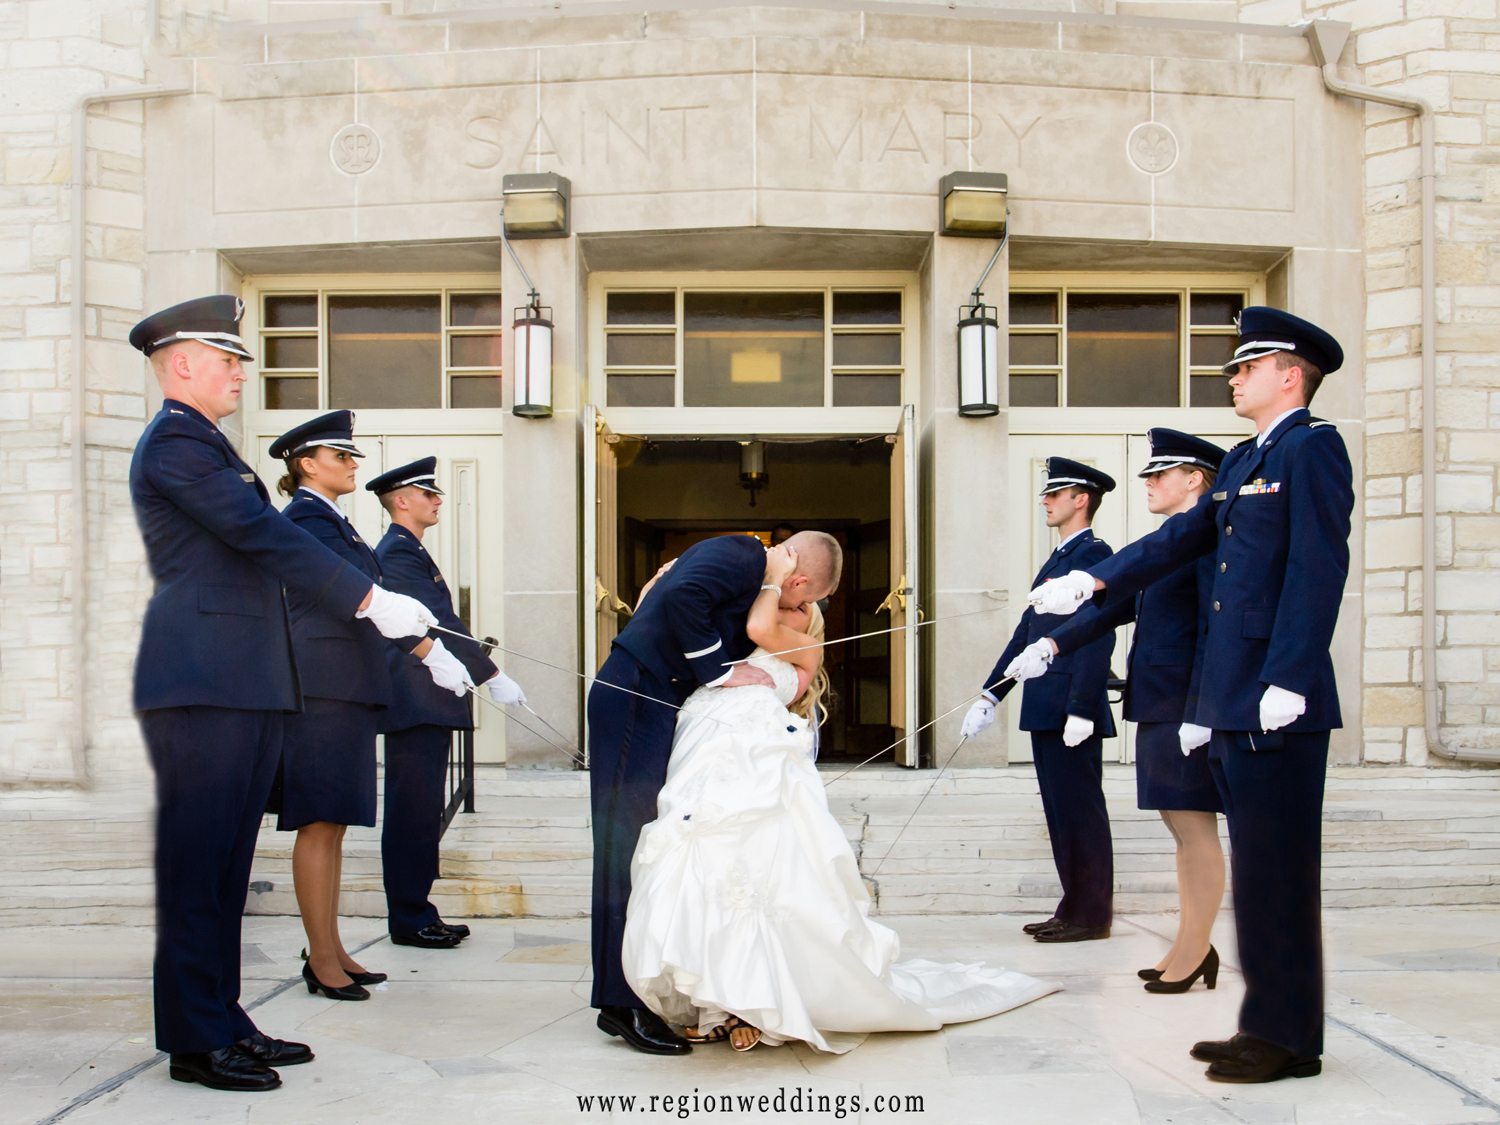 The marine honor guard salutes the bride and groom as they exit Saint Mary's Church in Griffith, Indiana.